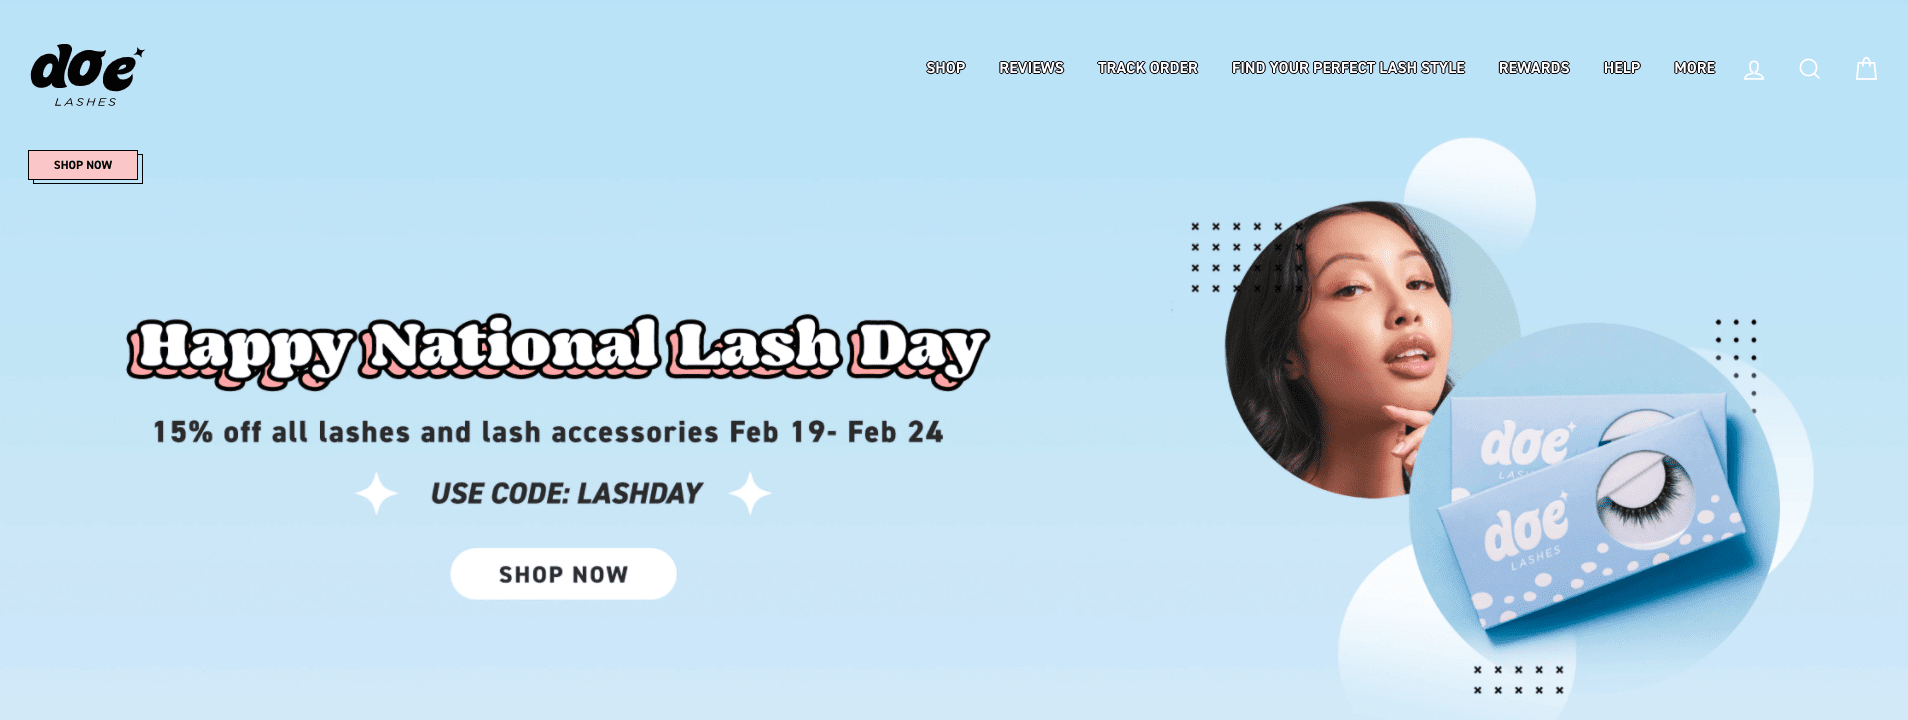 Screenshot of Doe Lashes home page